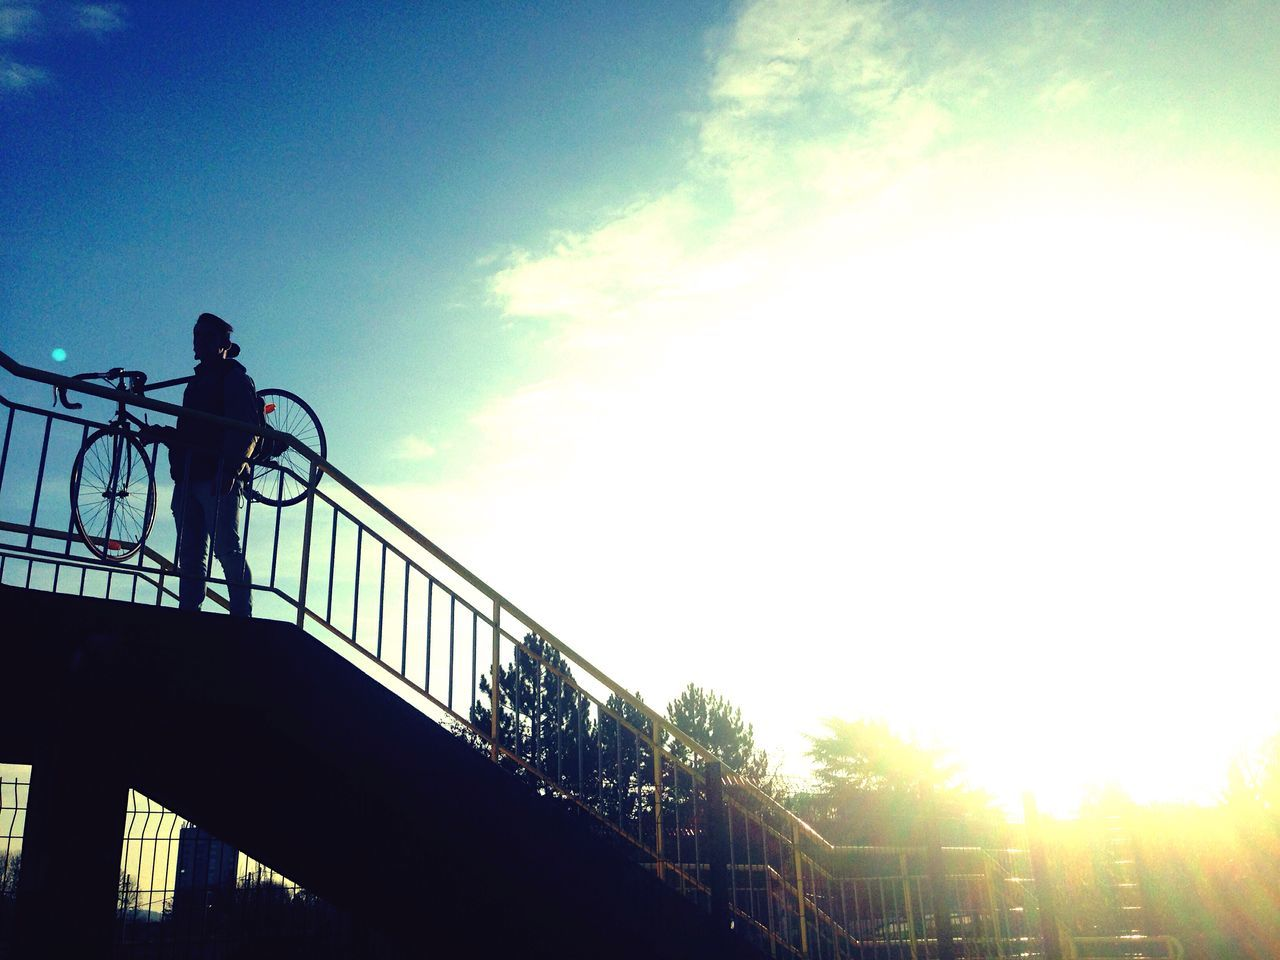 Low Angle View Of Silhouette Person Walking On Bridge